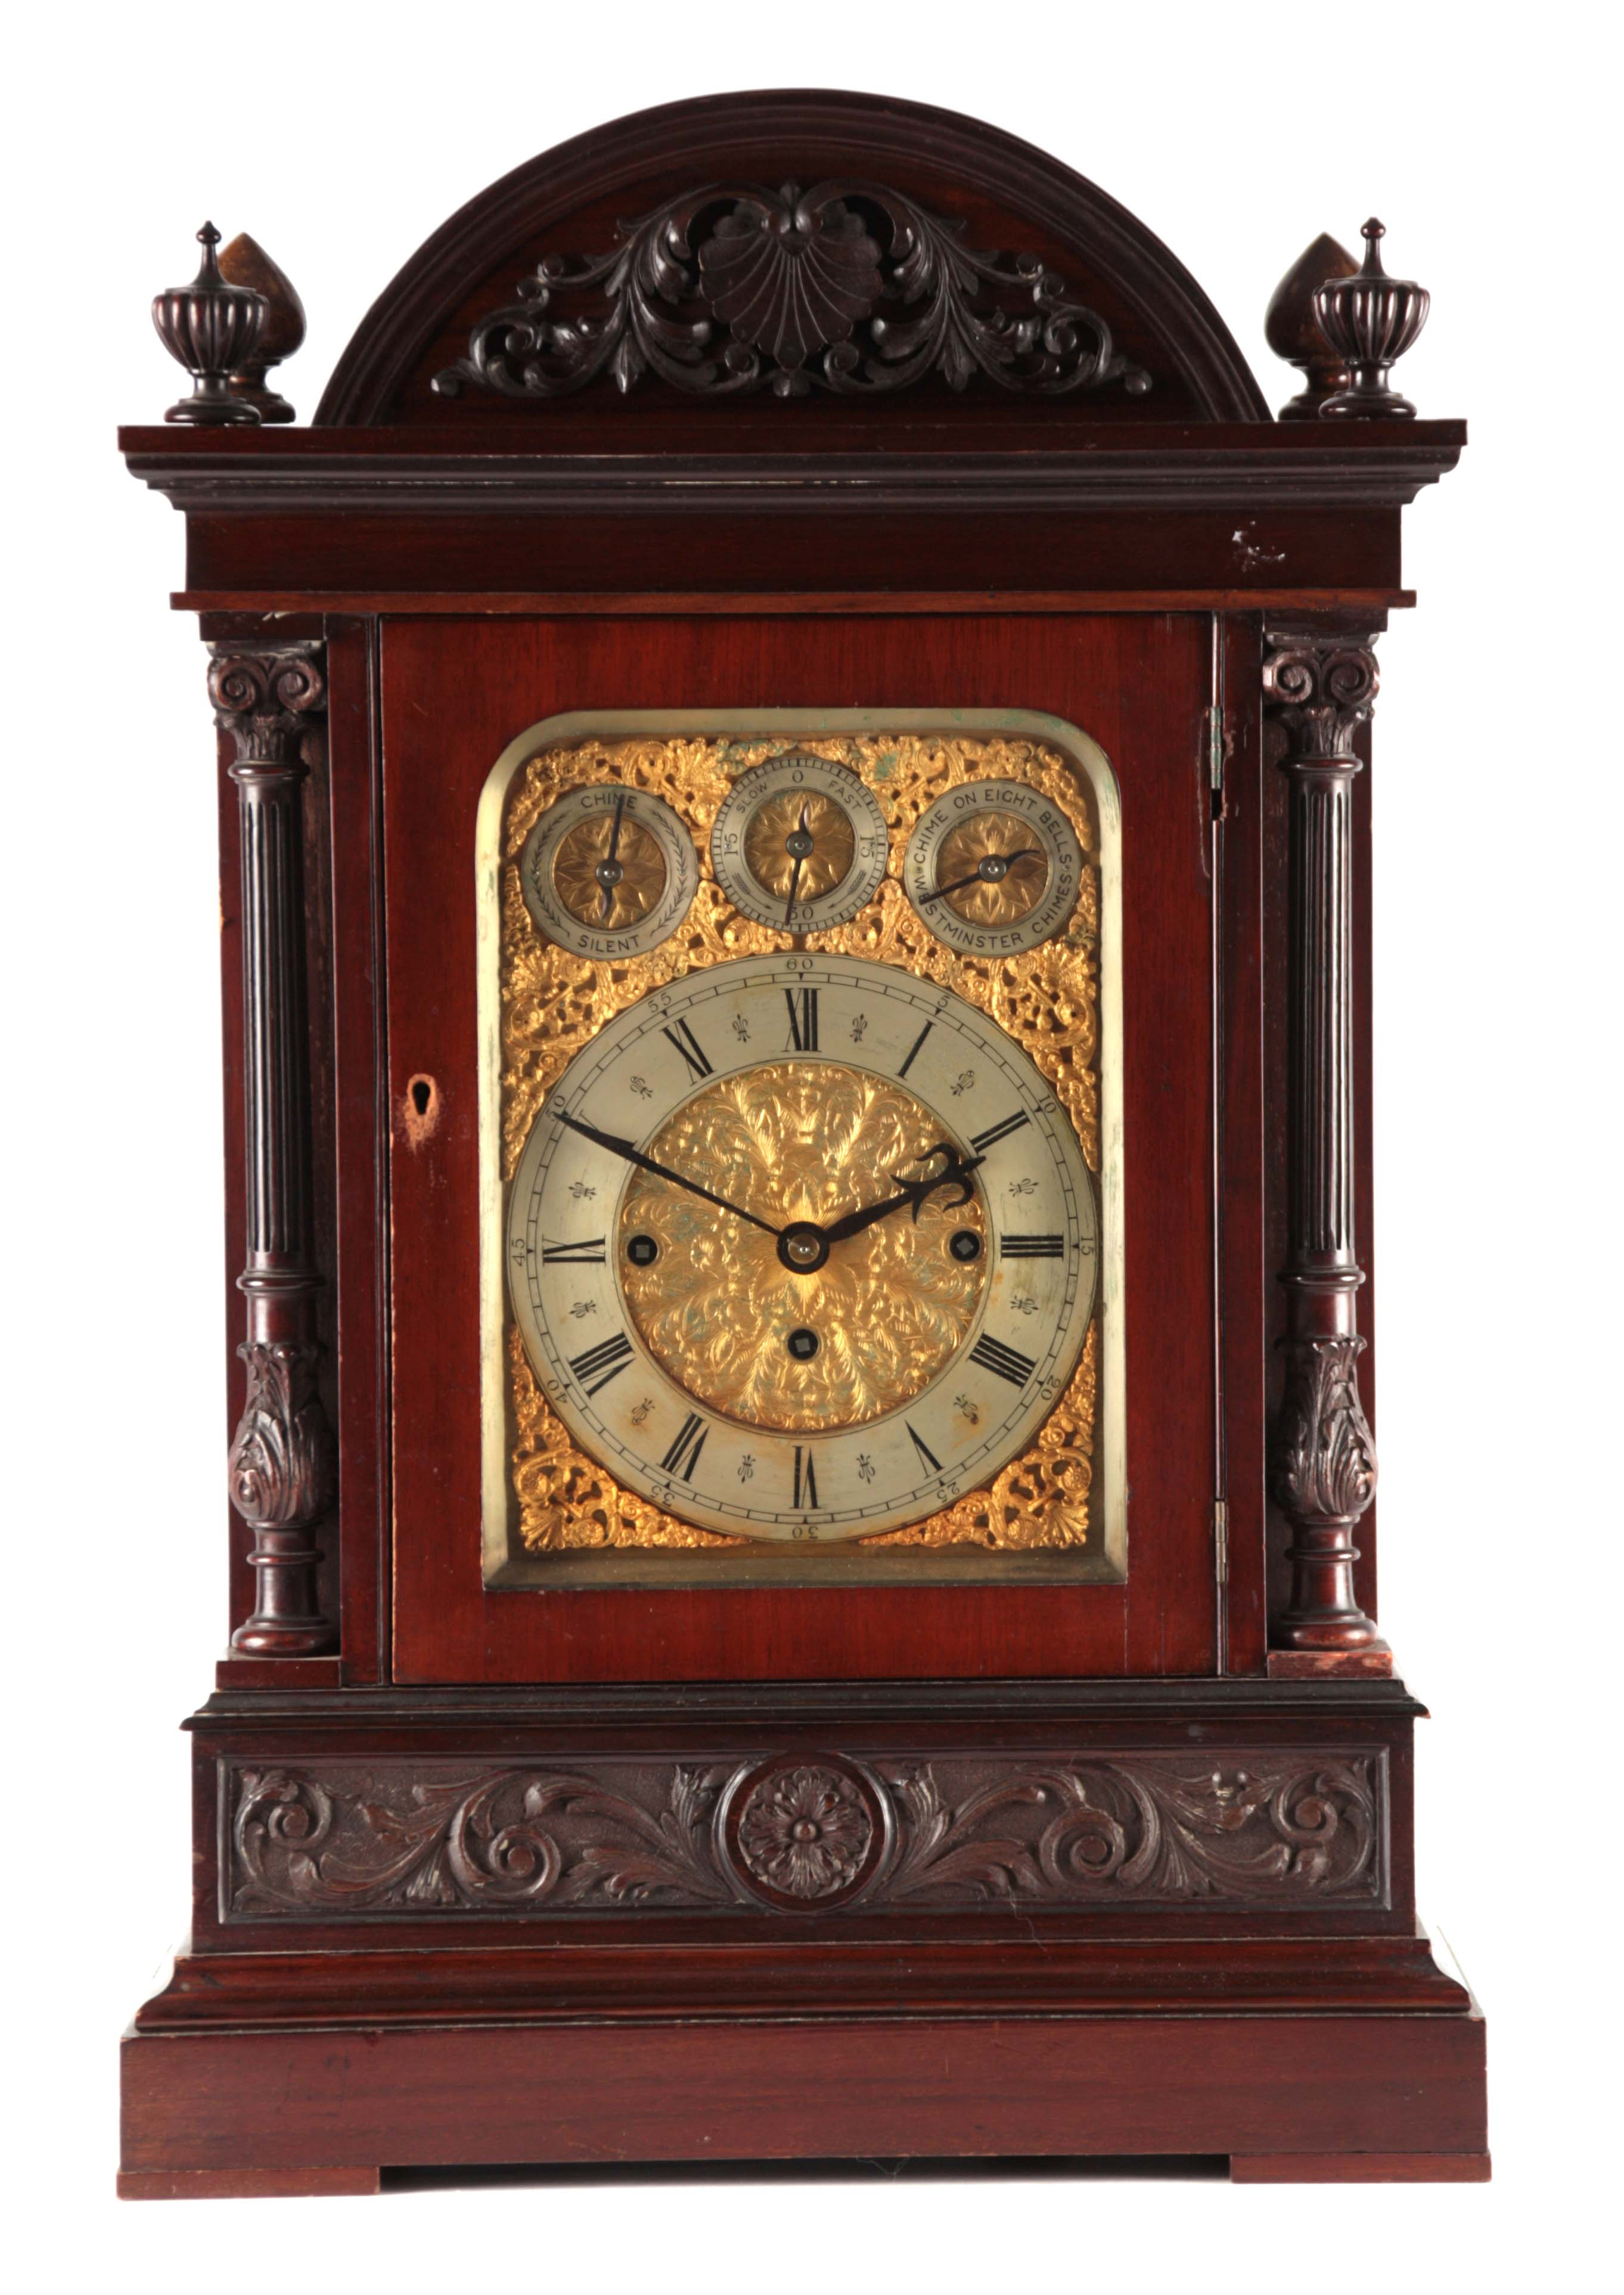 A LATE 19TH CENTURY QUARTER CHIMING TRIPLE FUSEE BRACKET CLOCK the large mahogany case with arched